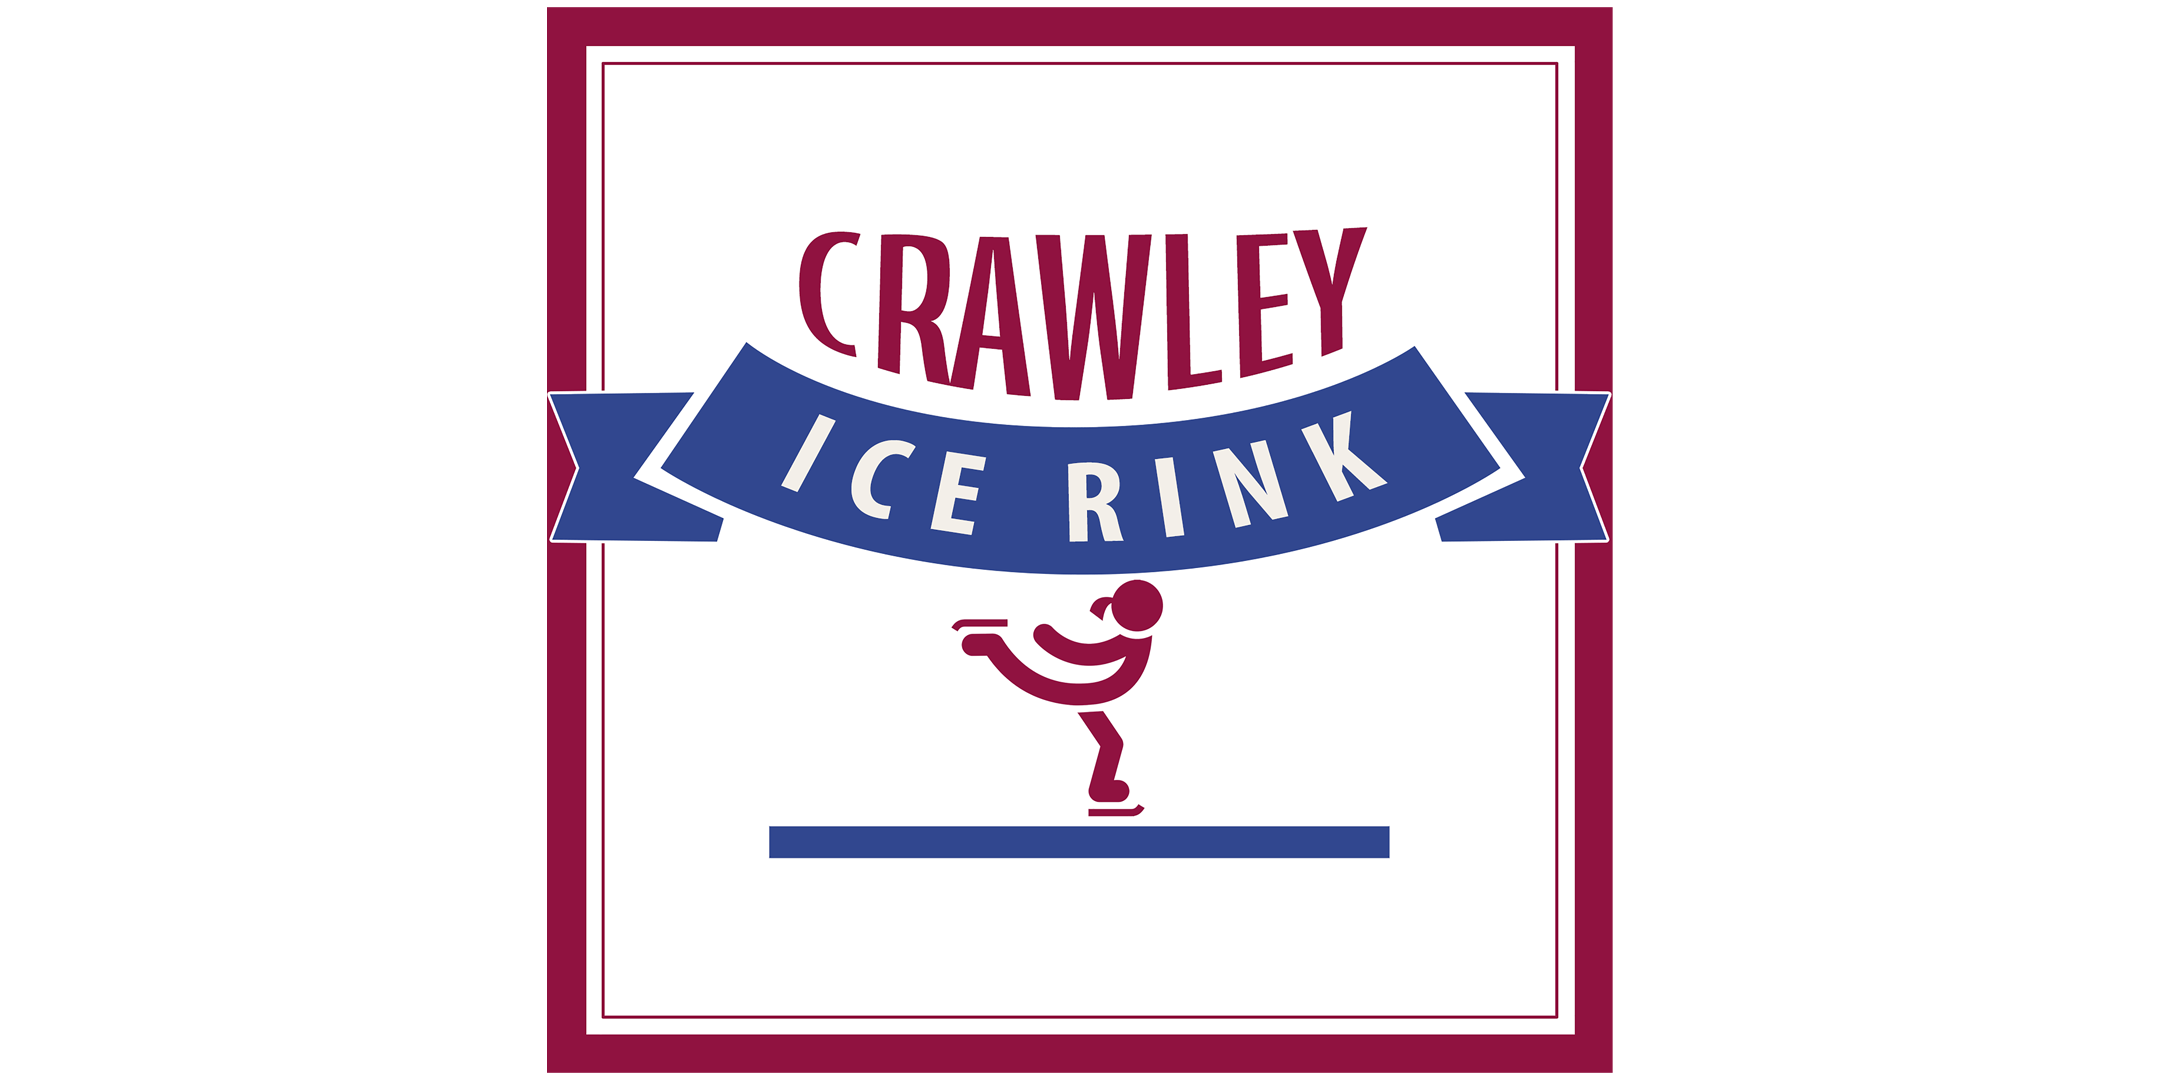 Crawley Ice Rink - 7th December (Off Peak)